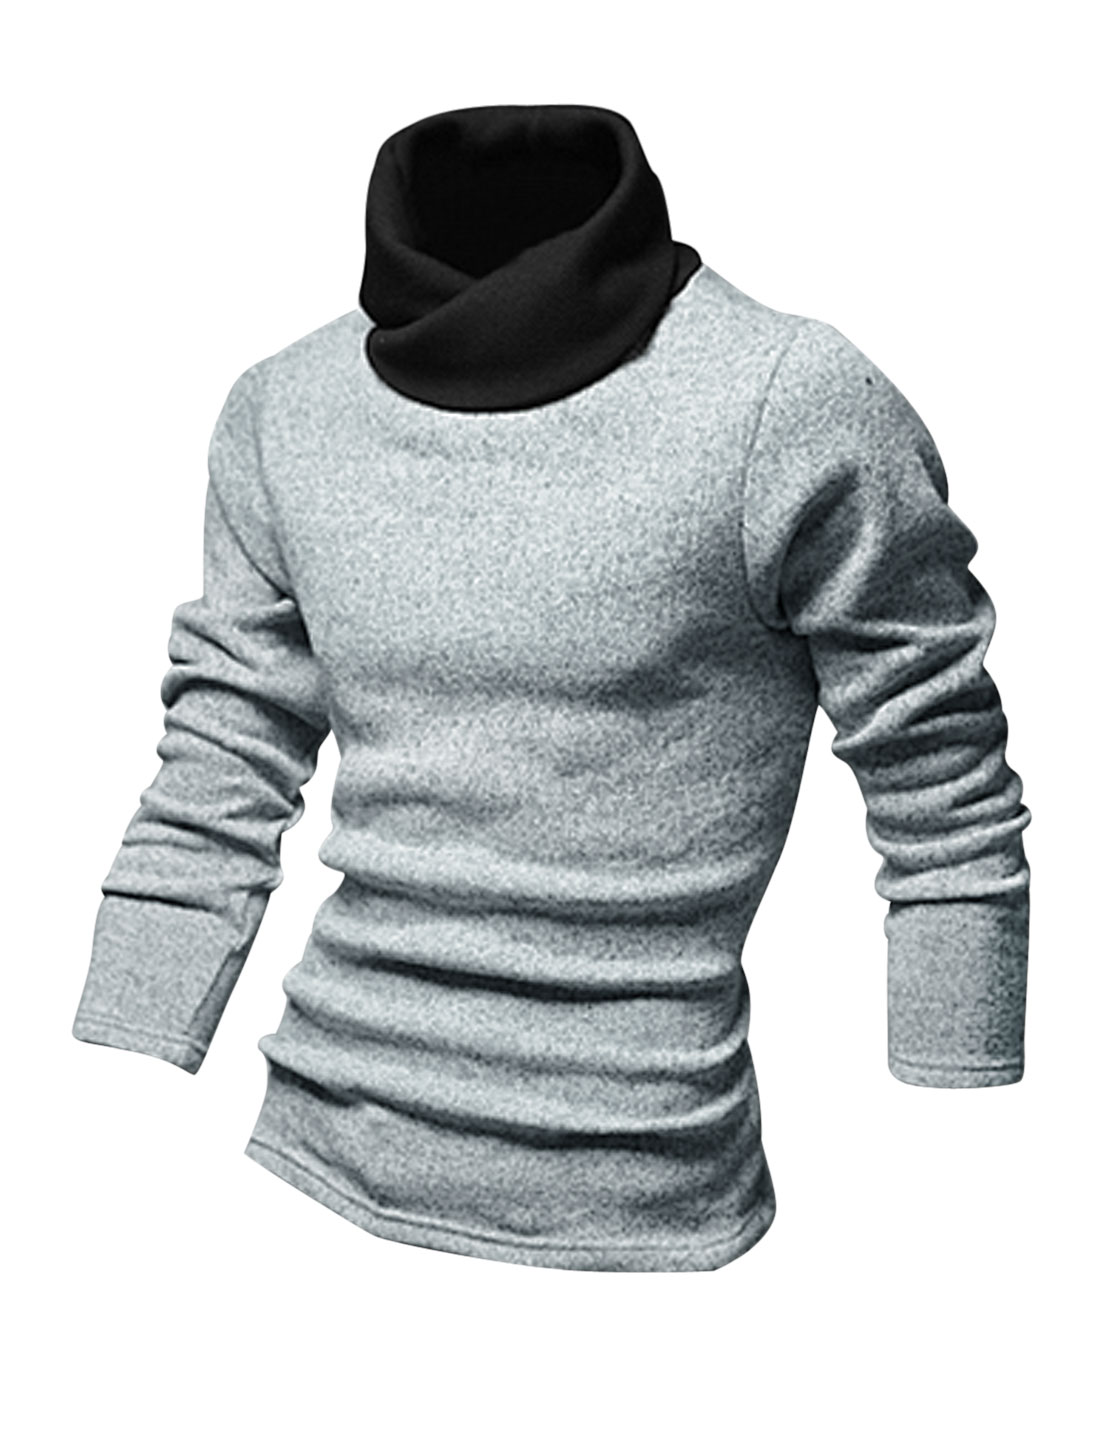 Men Cocoon Neck Long Sleeves Contrast Collar Stretchy Knit Shirt Light Gray M